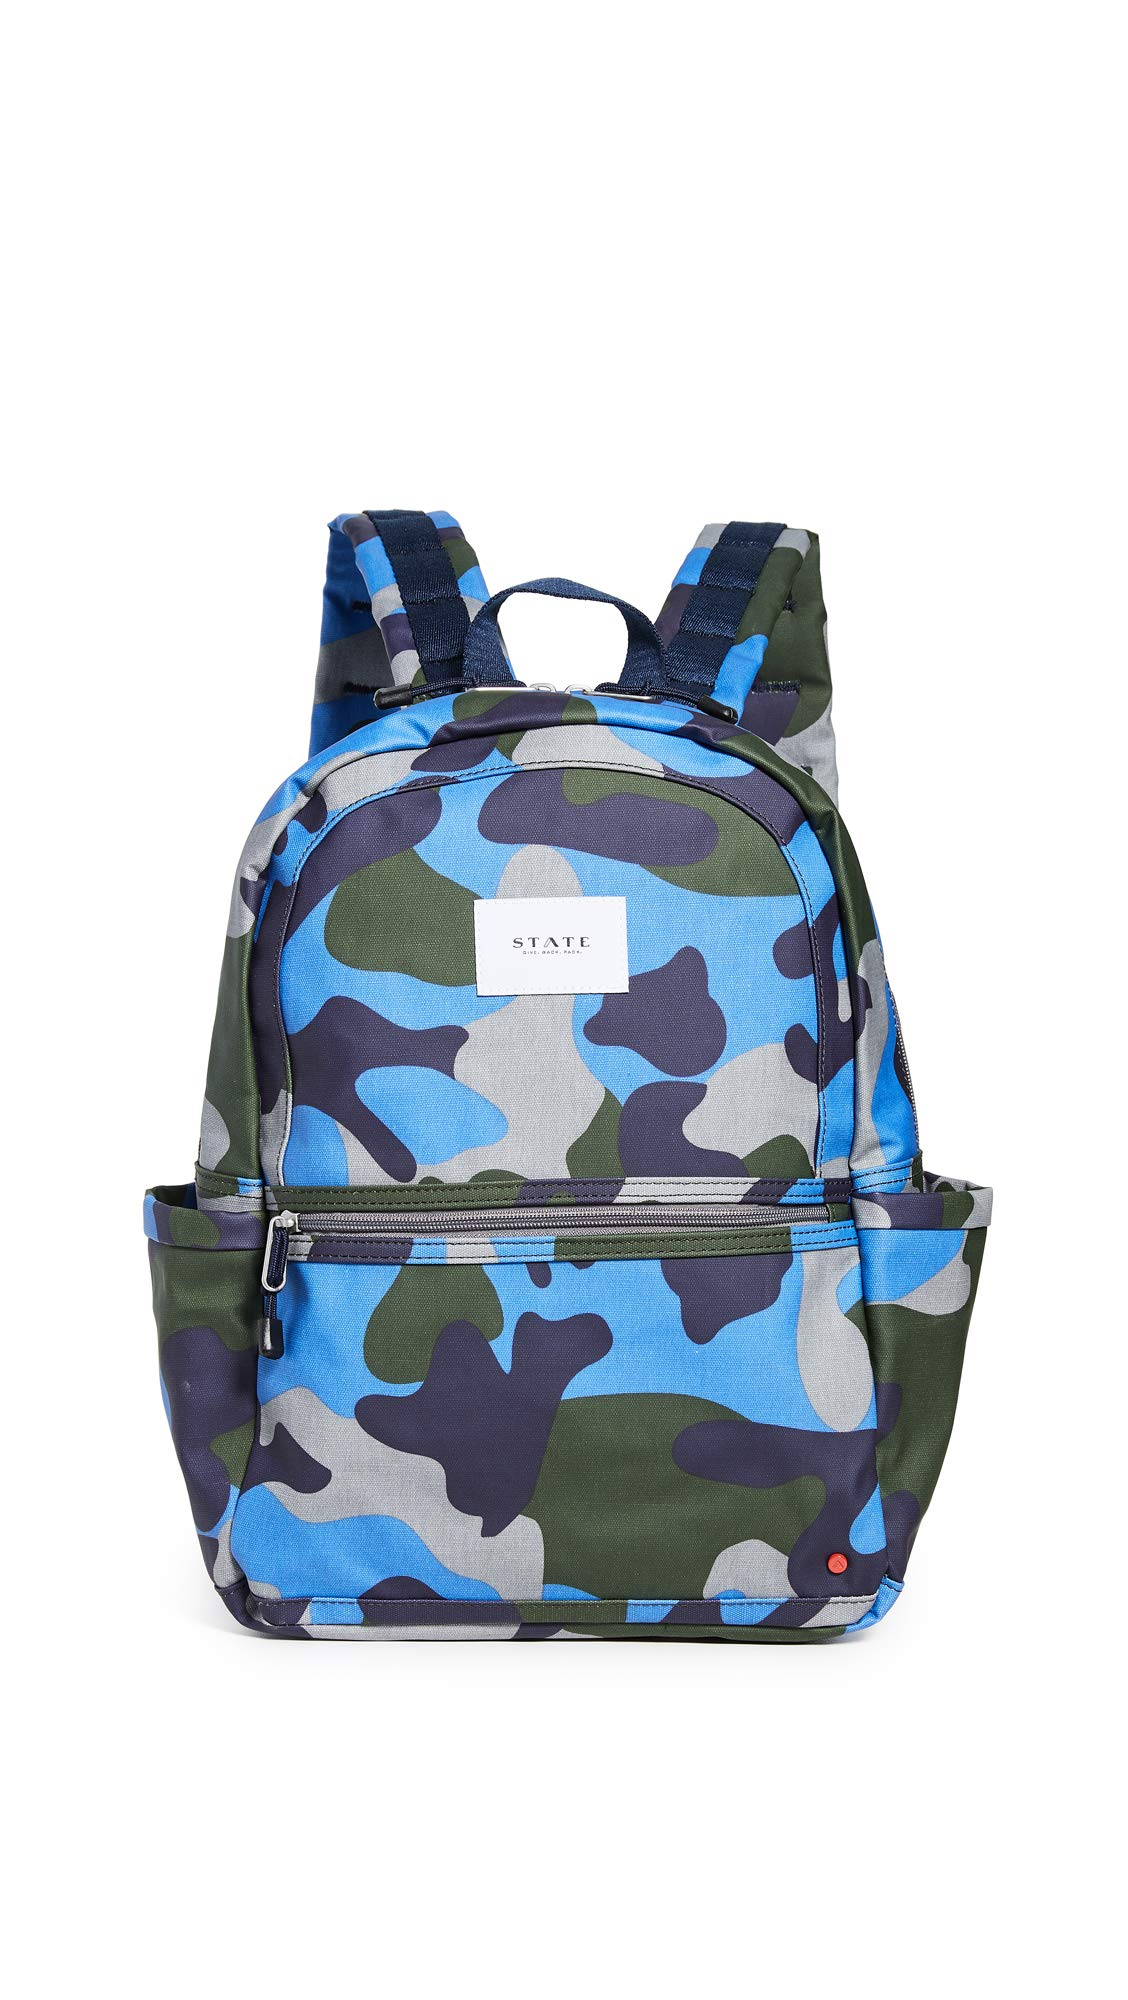 STATE Women's Kane Backpack, Camo, Blue, Print, One Size by STATE Bags